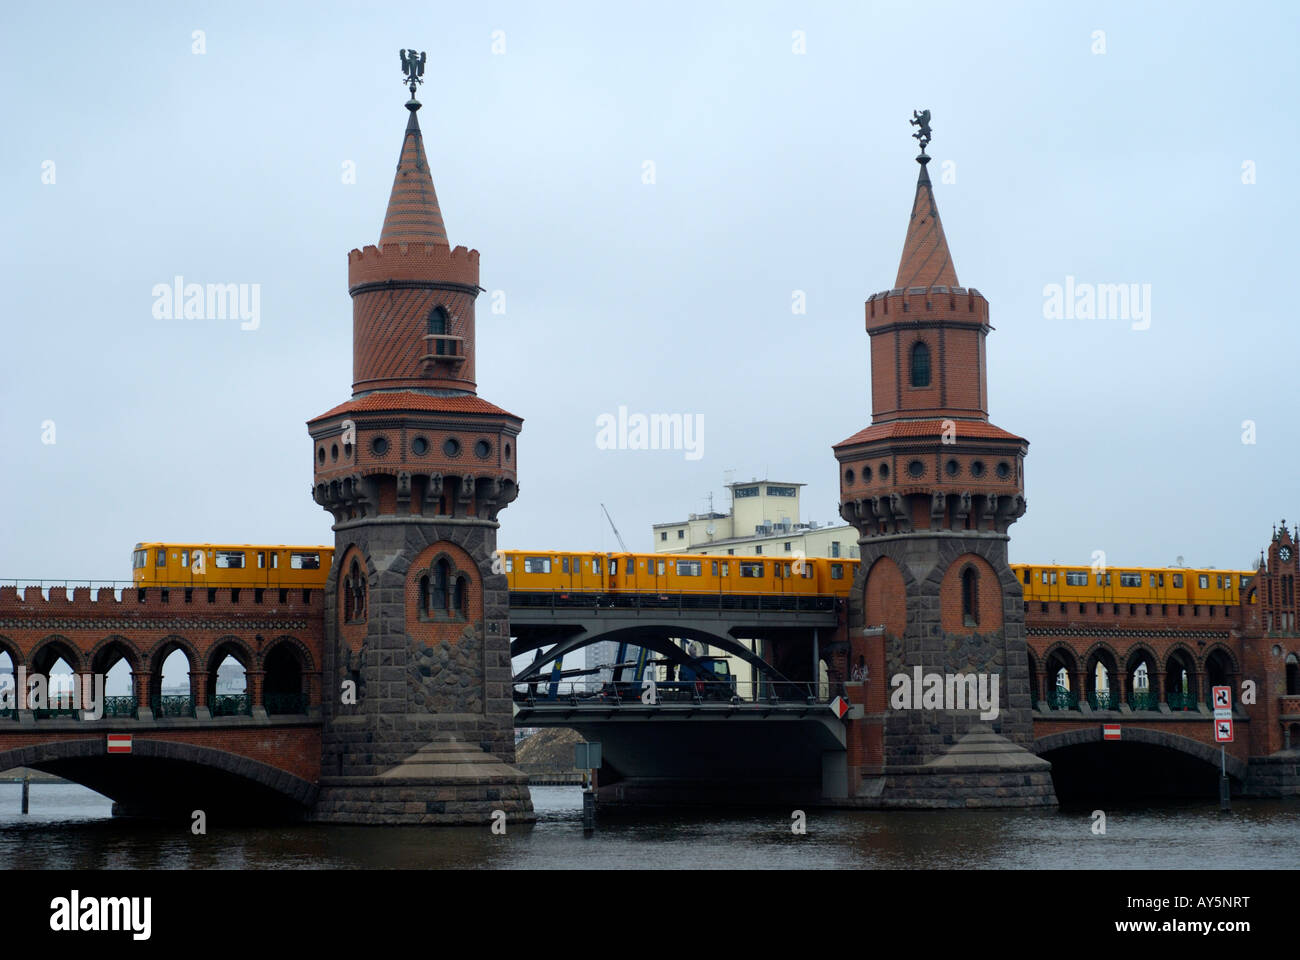 Oberbaumbrücke in Berlin march 2008. This bridge gained new fame with the movie 'Run Lola Run'. - Stock Image